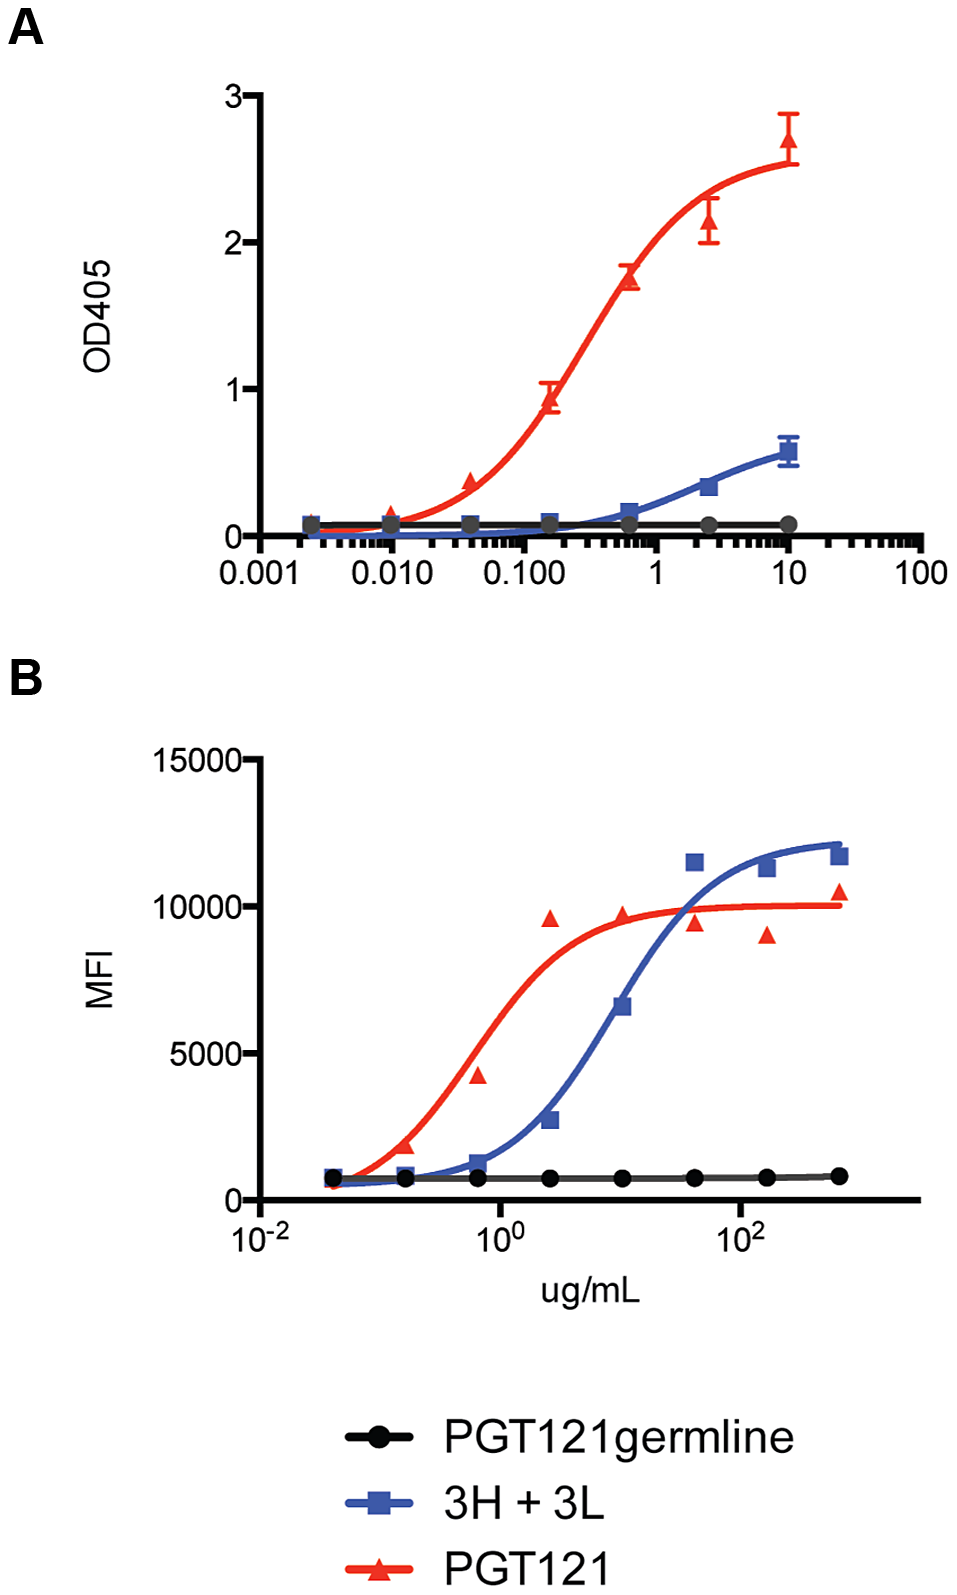 Putative germline of PGT121 does not bind monomeric gp120 or cell surface Env.